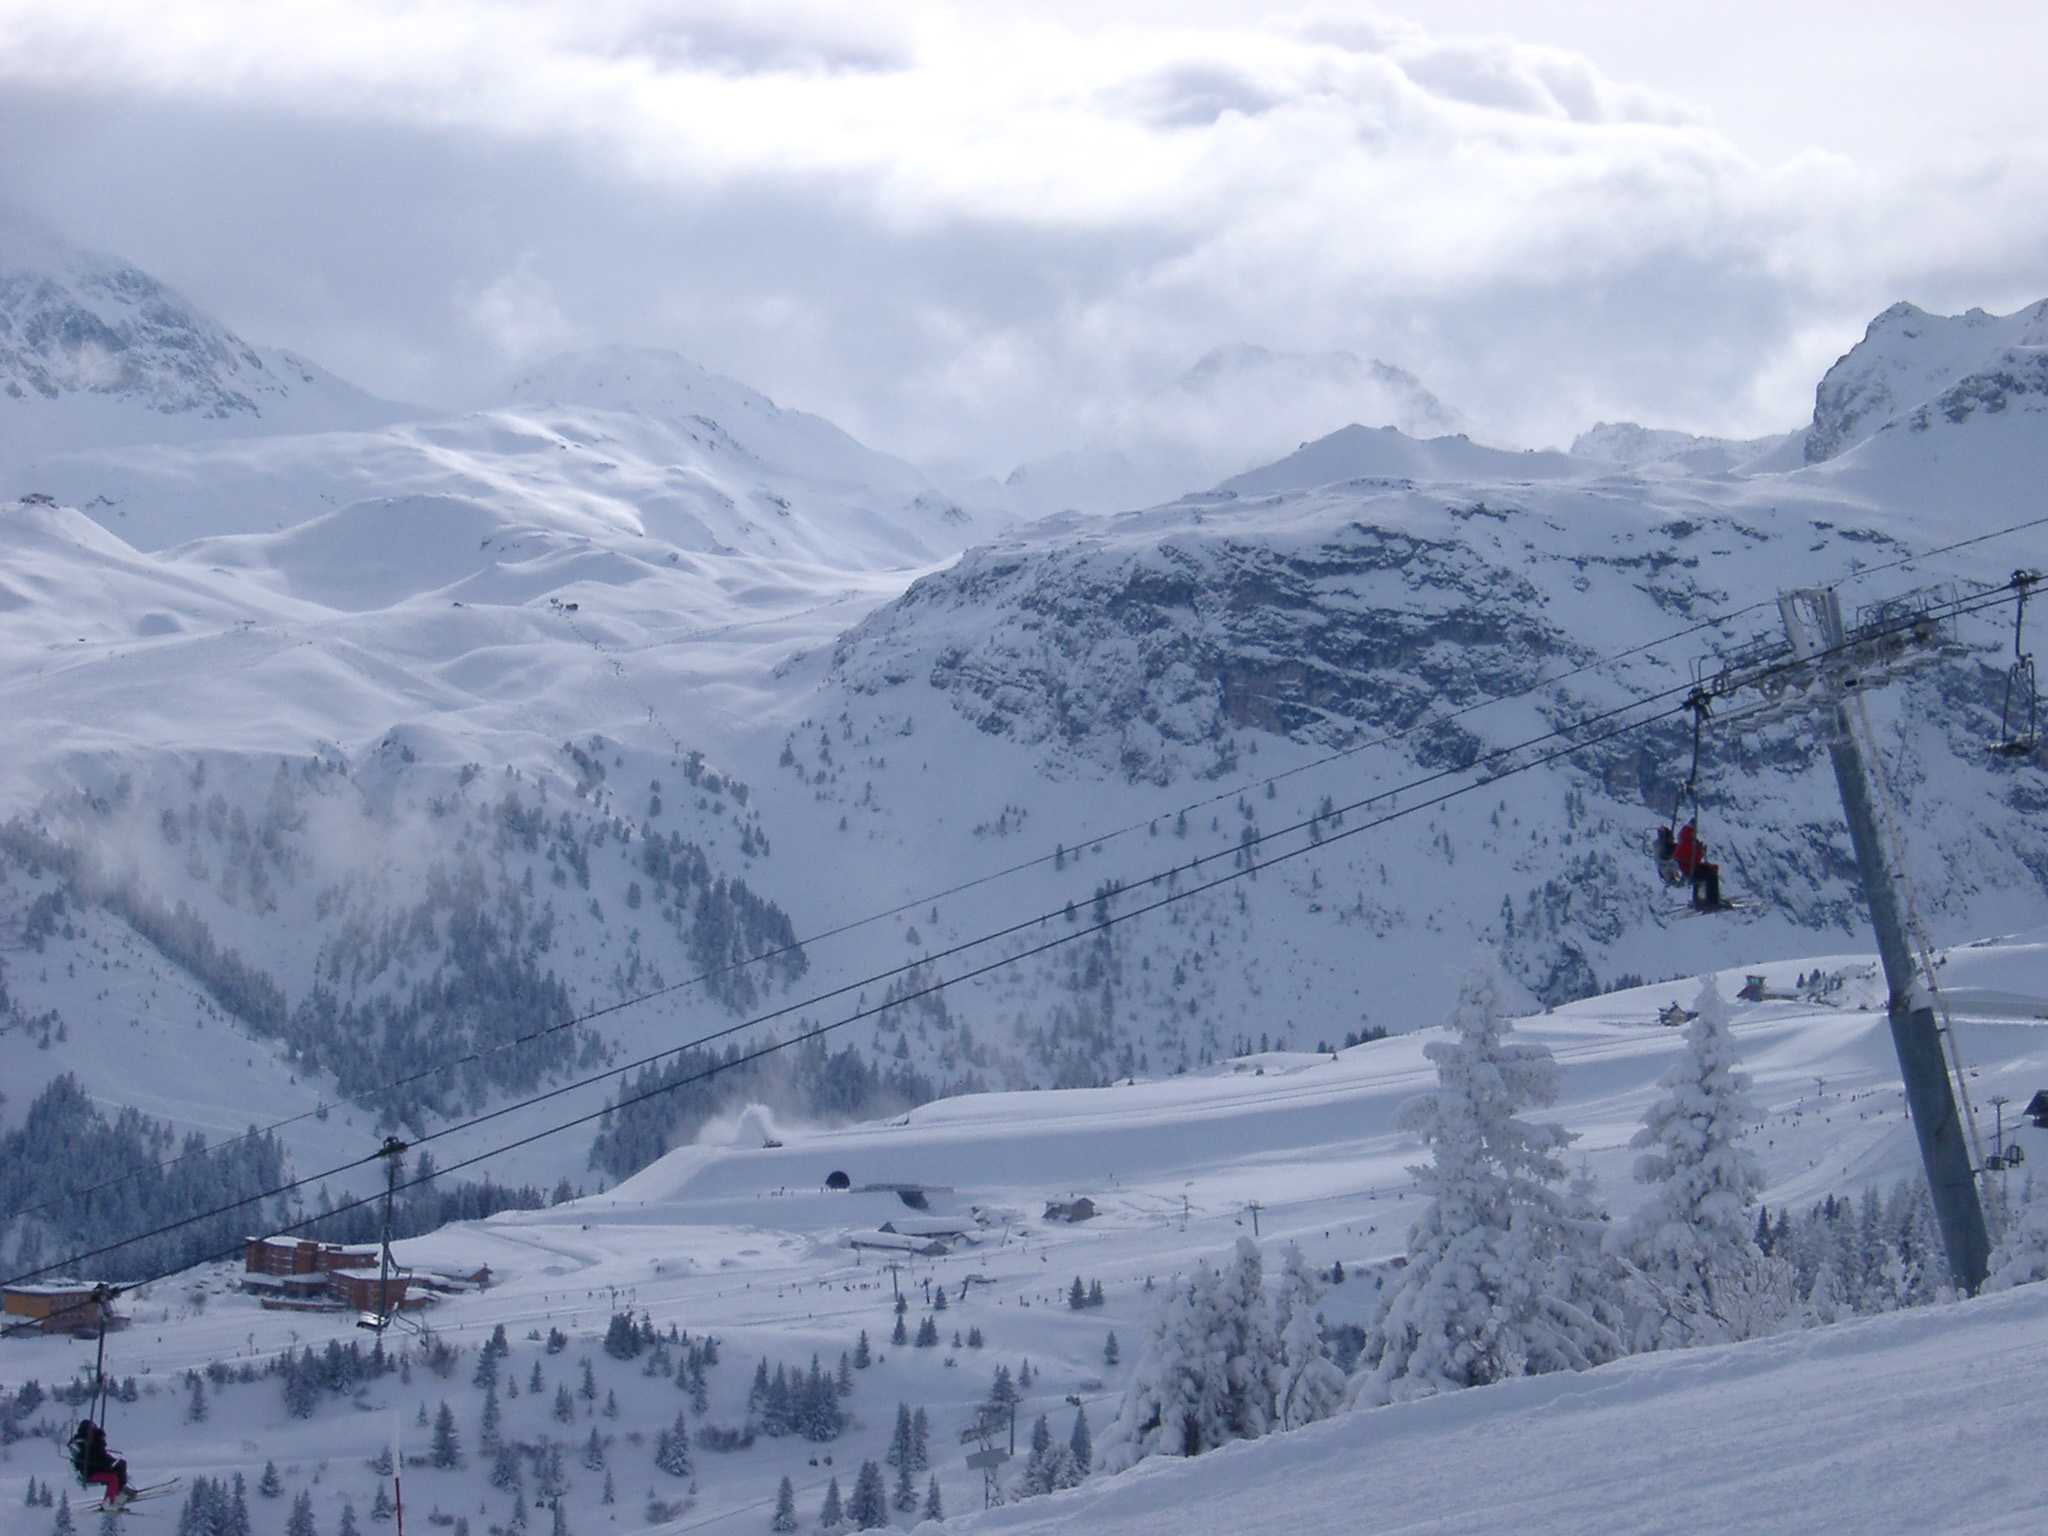 Extensive View of Beautiful Piste for Mountain Sports, like Skiing and Snowboarding, Captured with Cable Cars Passing on Winter Holiday Season.